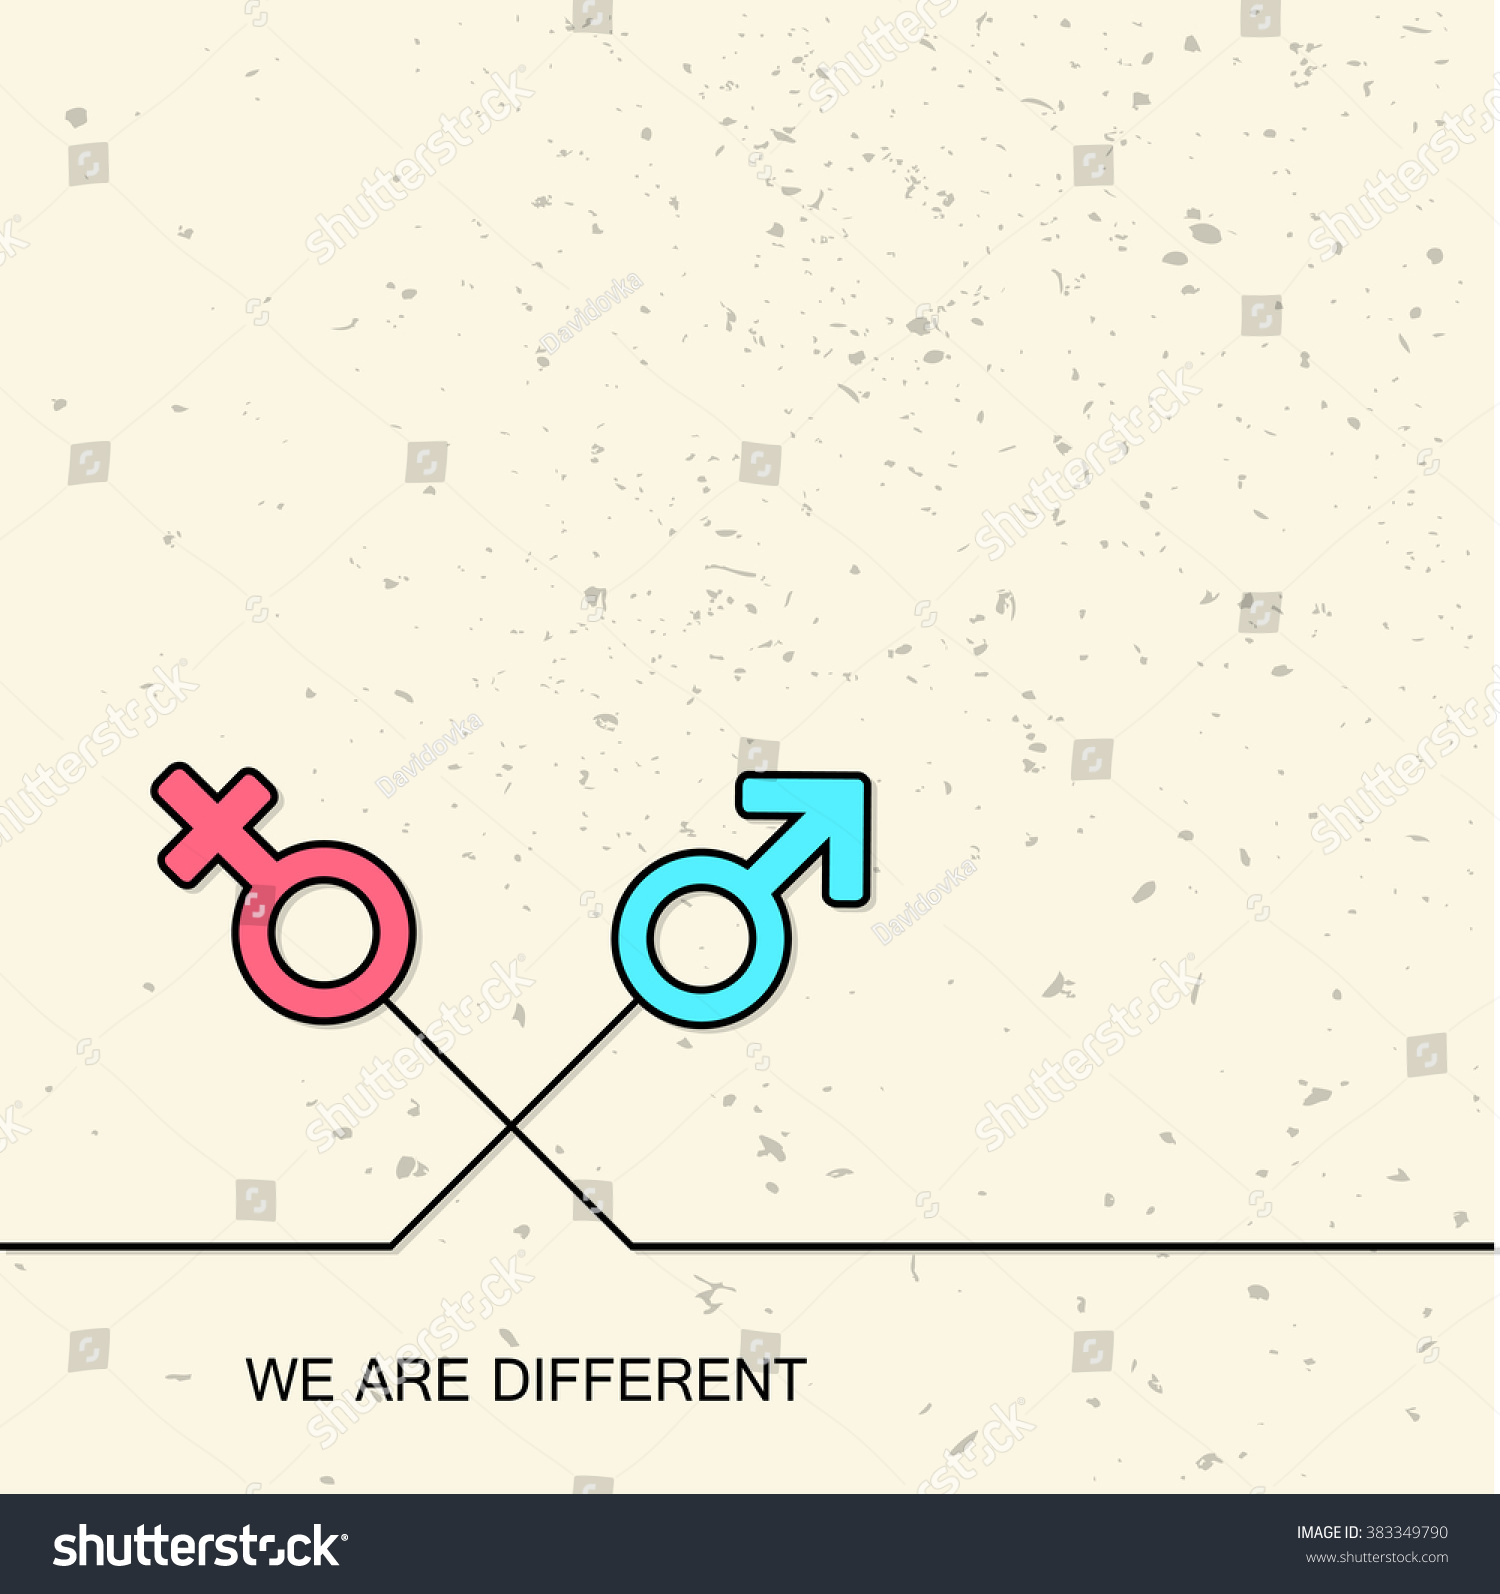 Gender differences in relationships and sexuality